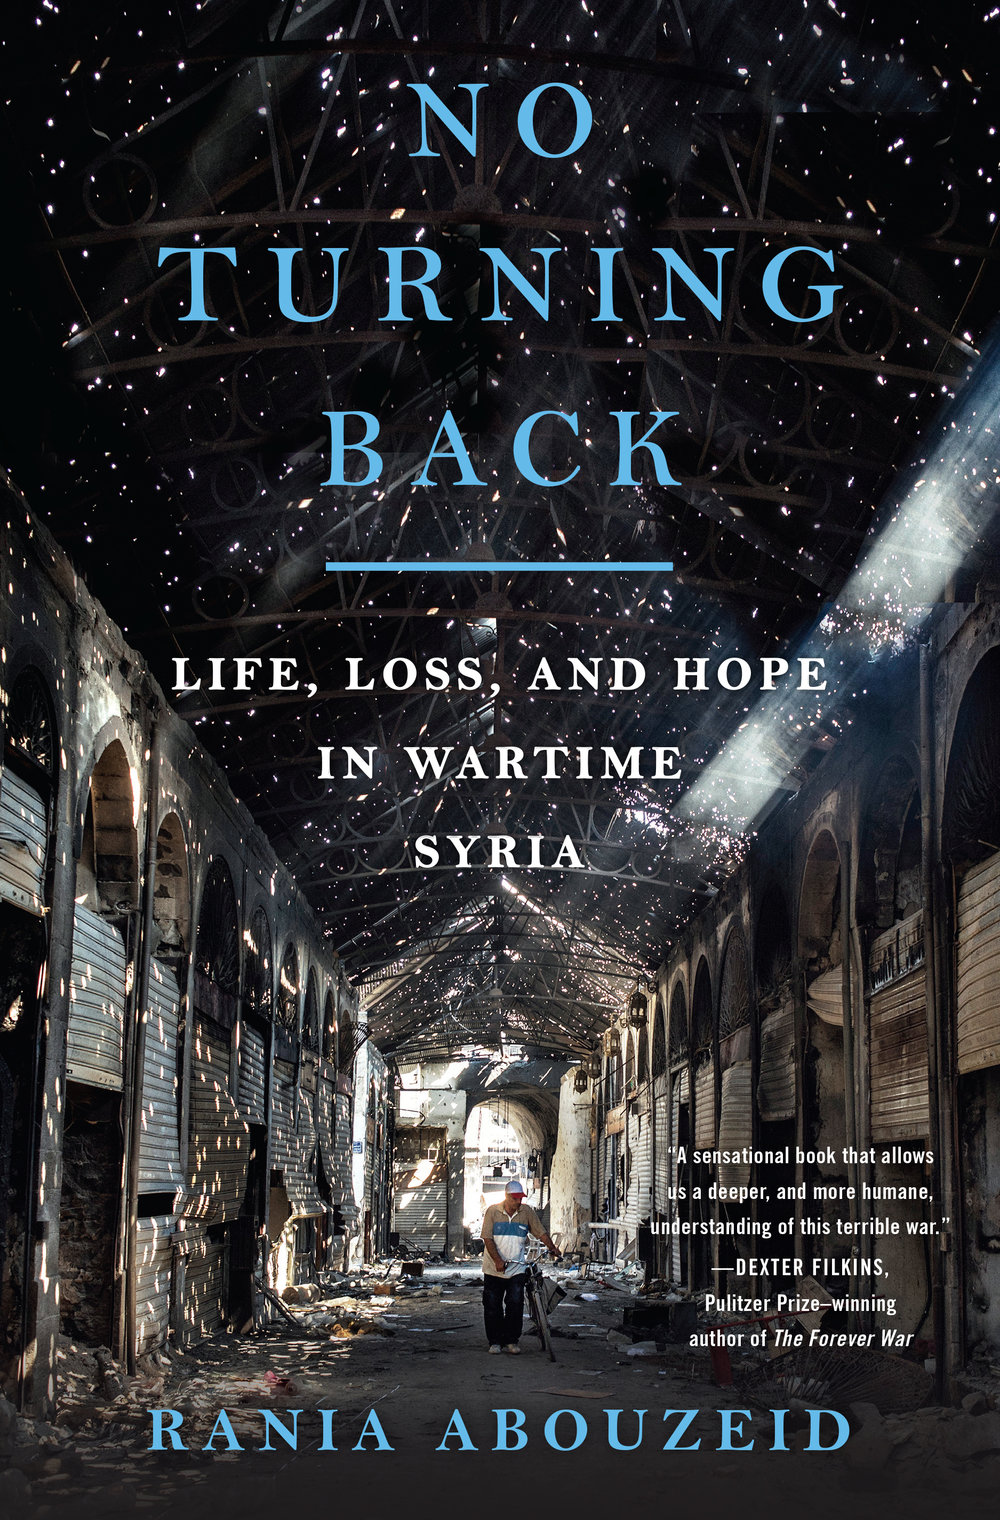 "MORE 'BEST OF 2018' - THE CHRISTIAN SCIENCE MONITOR - BEST 2018 NONFICTION TITLES""Rania Abouzeid, who conducted life-threatening reporting to make the book happen, based ""No Turning Back"" on personal stories of those affected by the Syrian civil war. She gives voice to a handful of the millions of Syrians whose lives were tragically upended by war.""MEN'S JOURNALBooks We Couldn't Put Down in 2018 - including No Turning Back, a ""feat of war reporting"" that brings ""into focus a war that too often feels unclear.""MONEYWEBGreat Books to Read in the Christmas Break - including No Turning BackFOREIGN POLICY INTERRUPTEDBooks of 2018 - including No Turning BackHONG KONG FREE PRESSThe Ten Best Human Rights Books of 2018 - including No Turning Back"